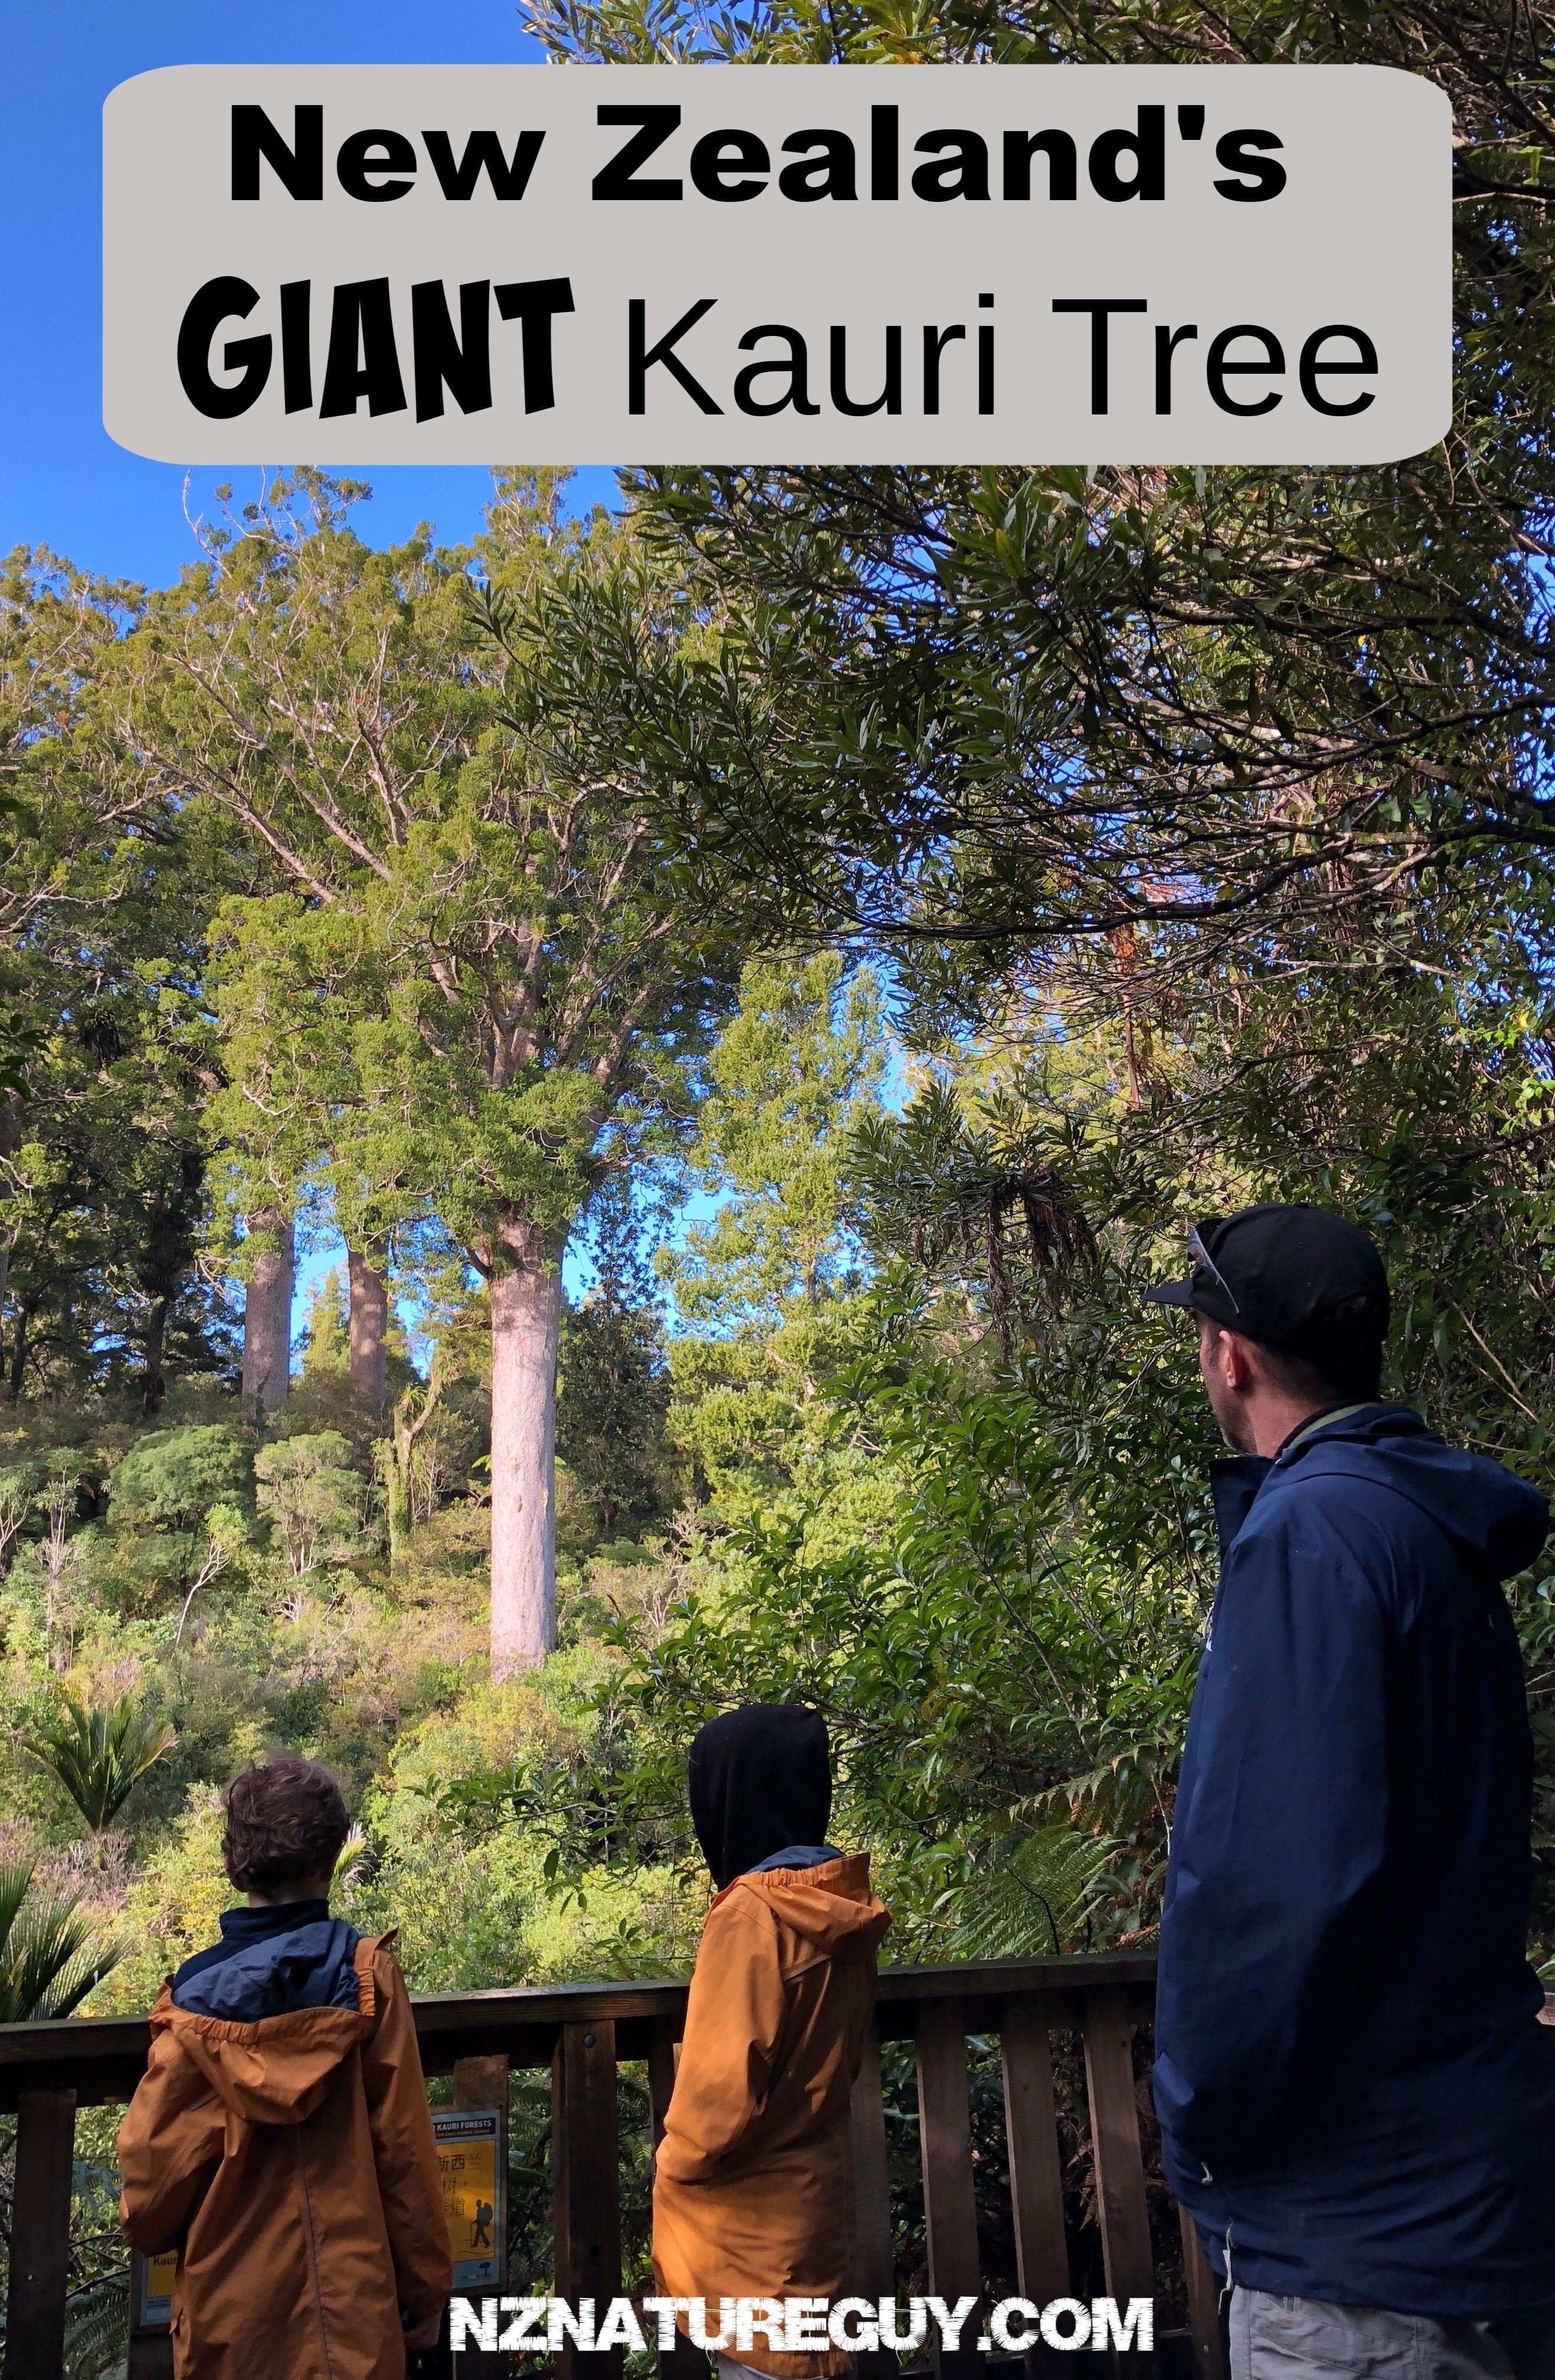 The tōtara (podocarpus totara) is symbolic of a great chief. These Kauri Trees Are Huge Old Amazing Trees I Can T Believe They Re Some Of The Biggest In The World Bigtrees Giantk Kauri Tree Giant Tree New Zealand